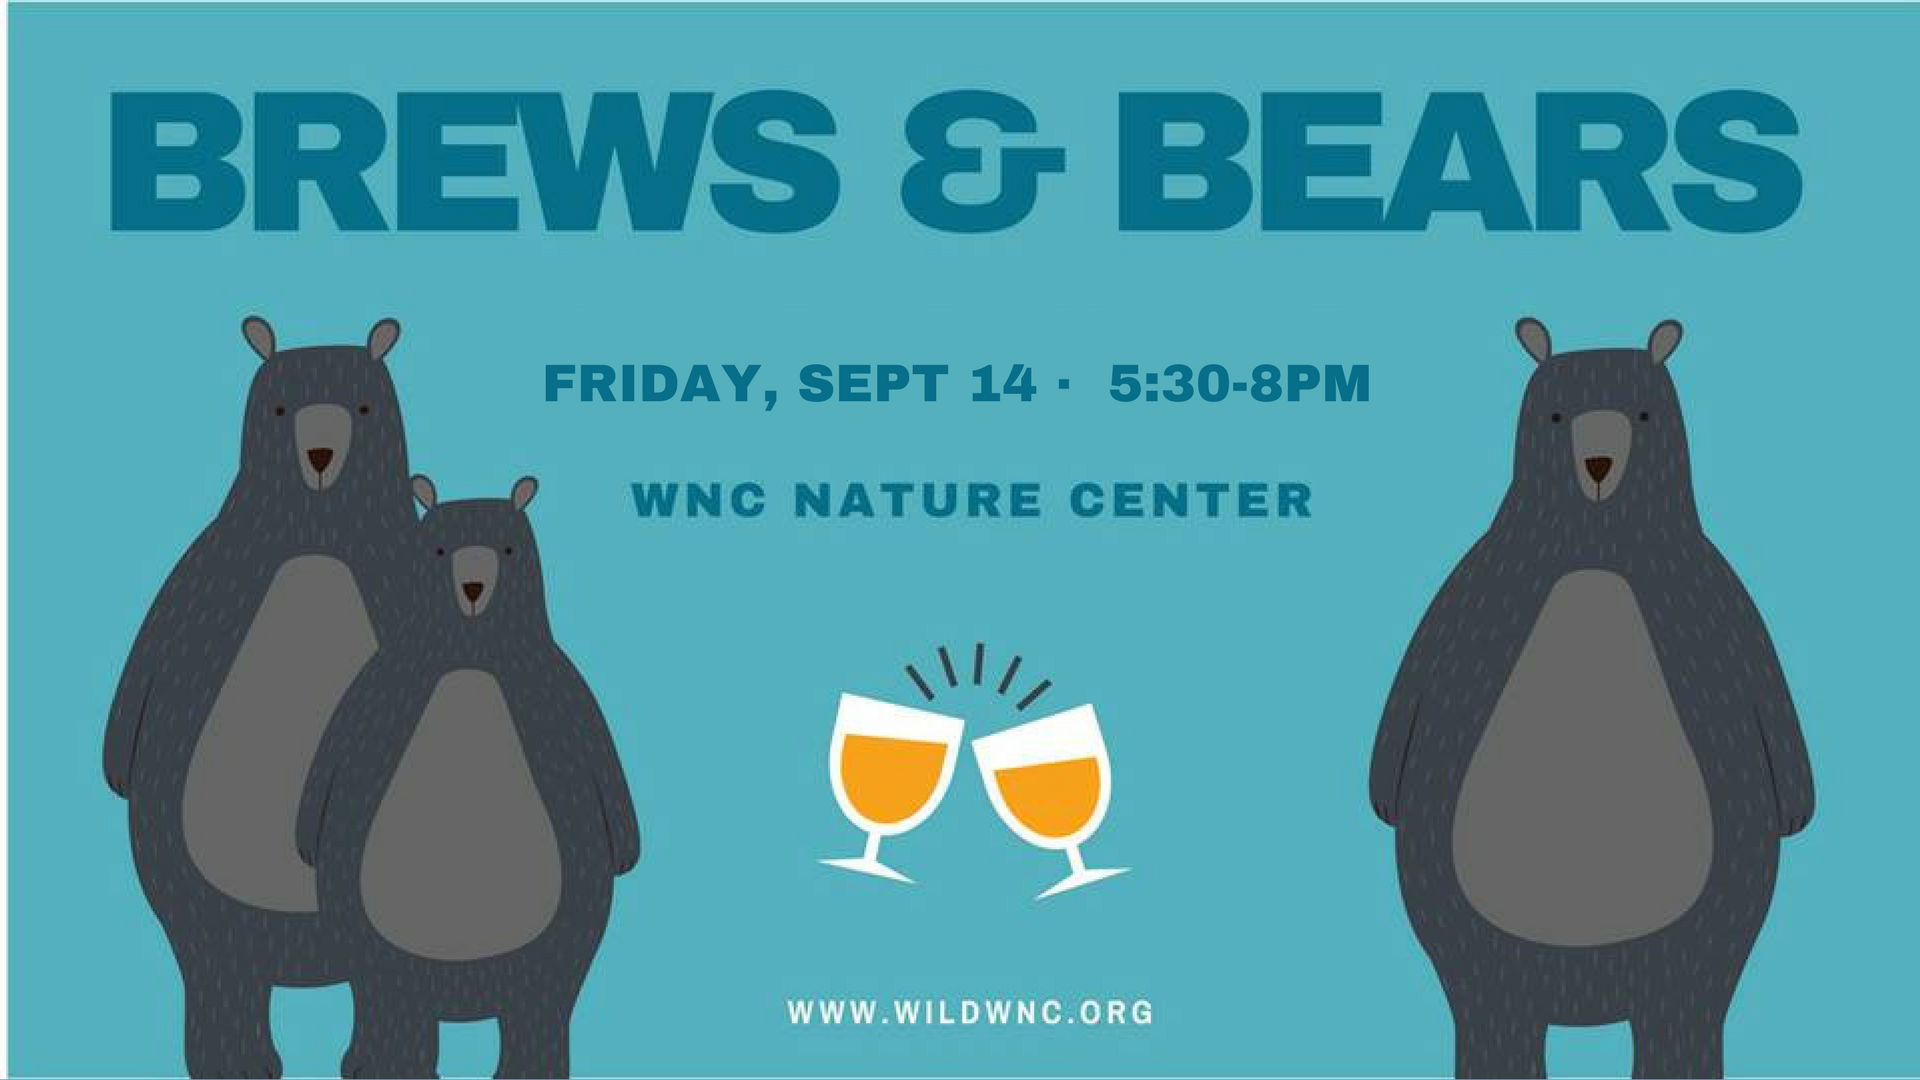 WNC Nature Center Brews & Bears